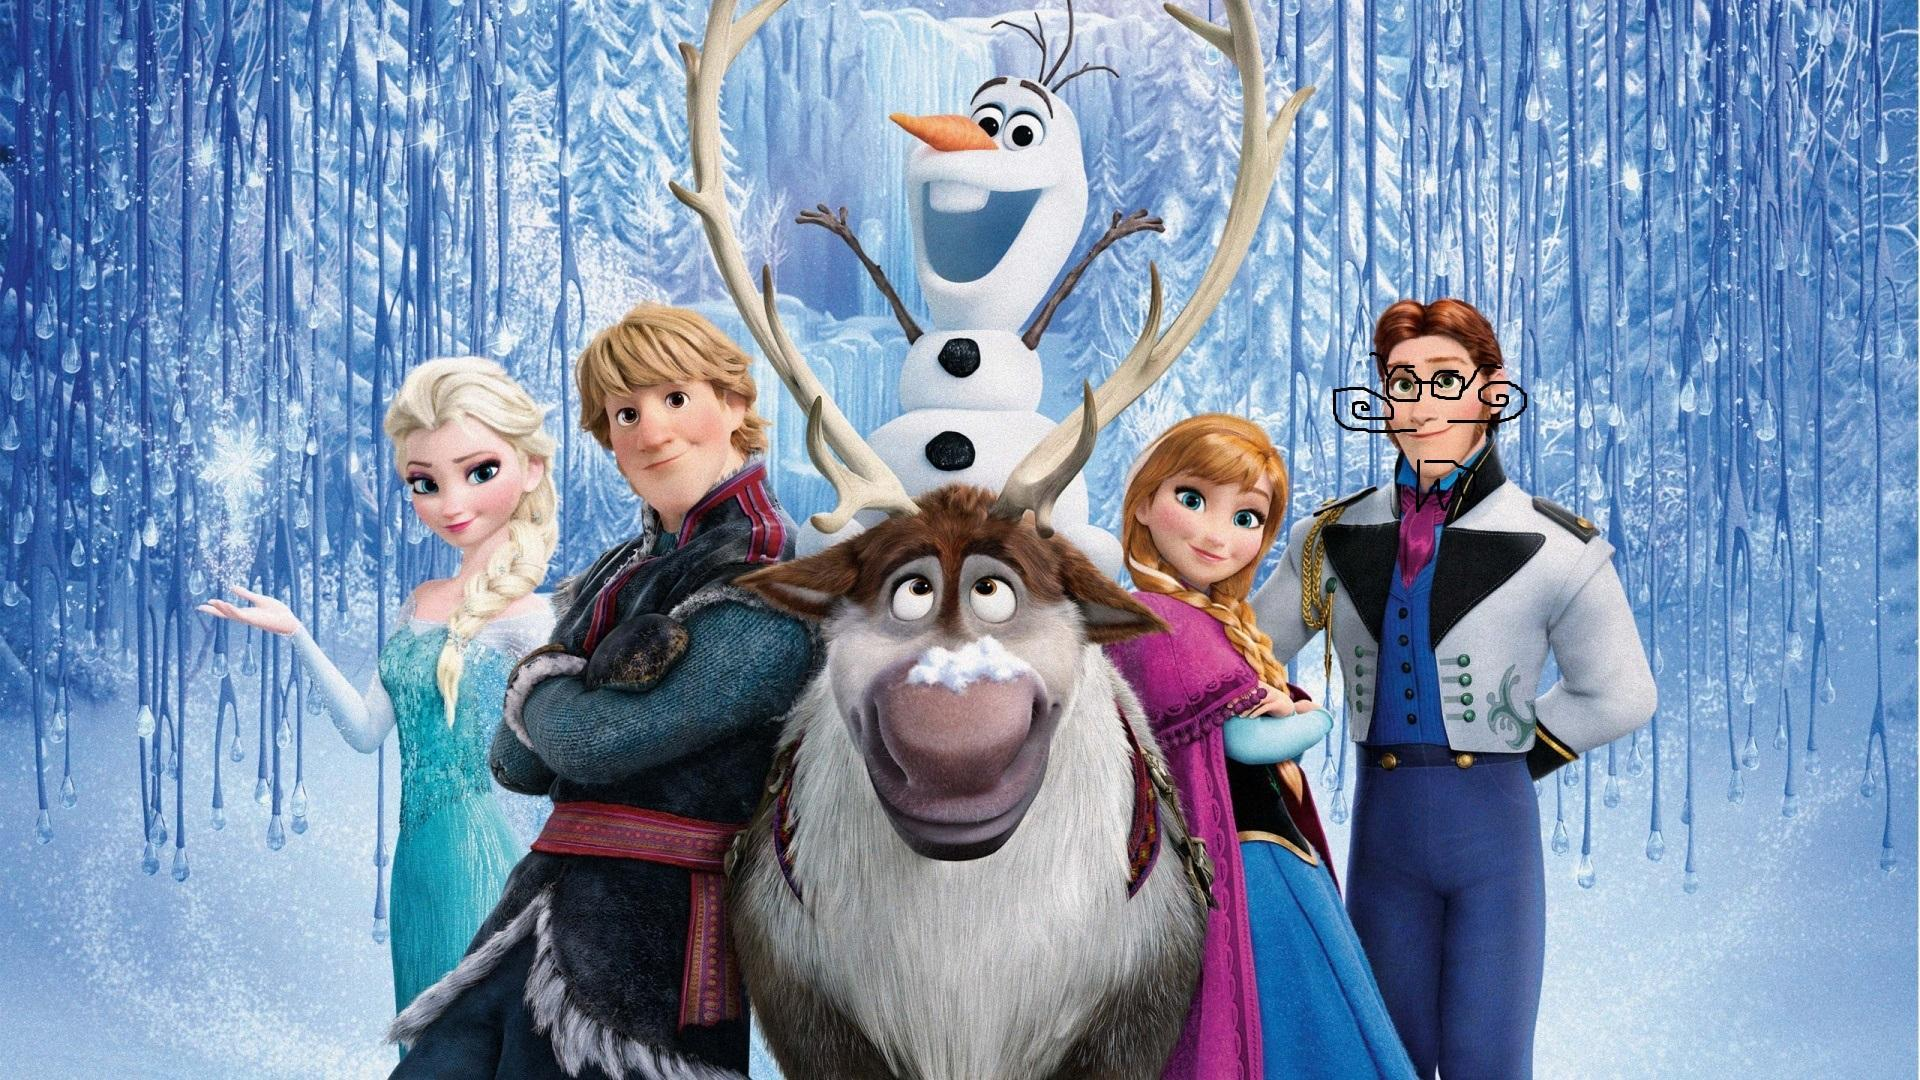 Which Frozen Character Are You Most Like?